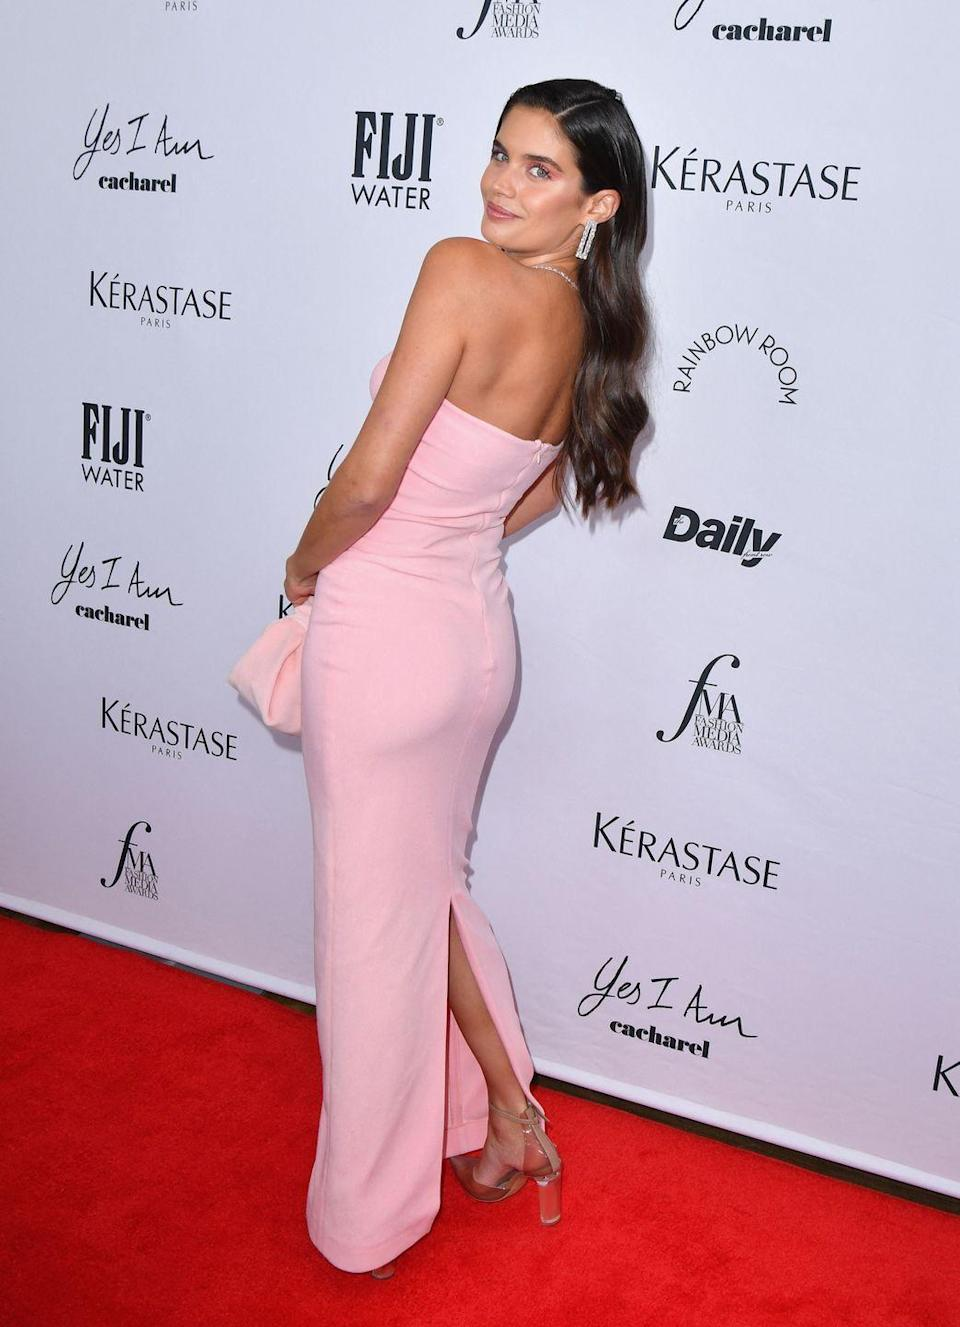 <p><strong>9 September</strong></p><p>Sara Sampaio wore a pale pink, strapless gown to the award show.</p>